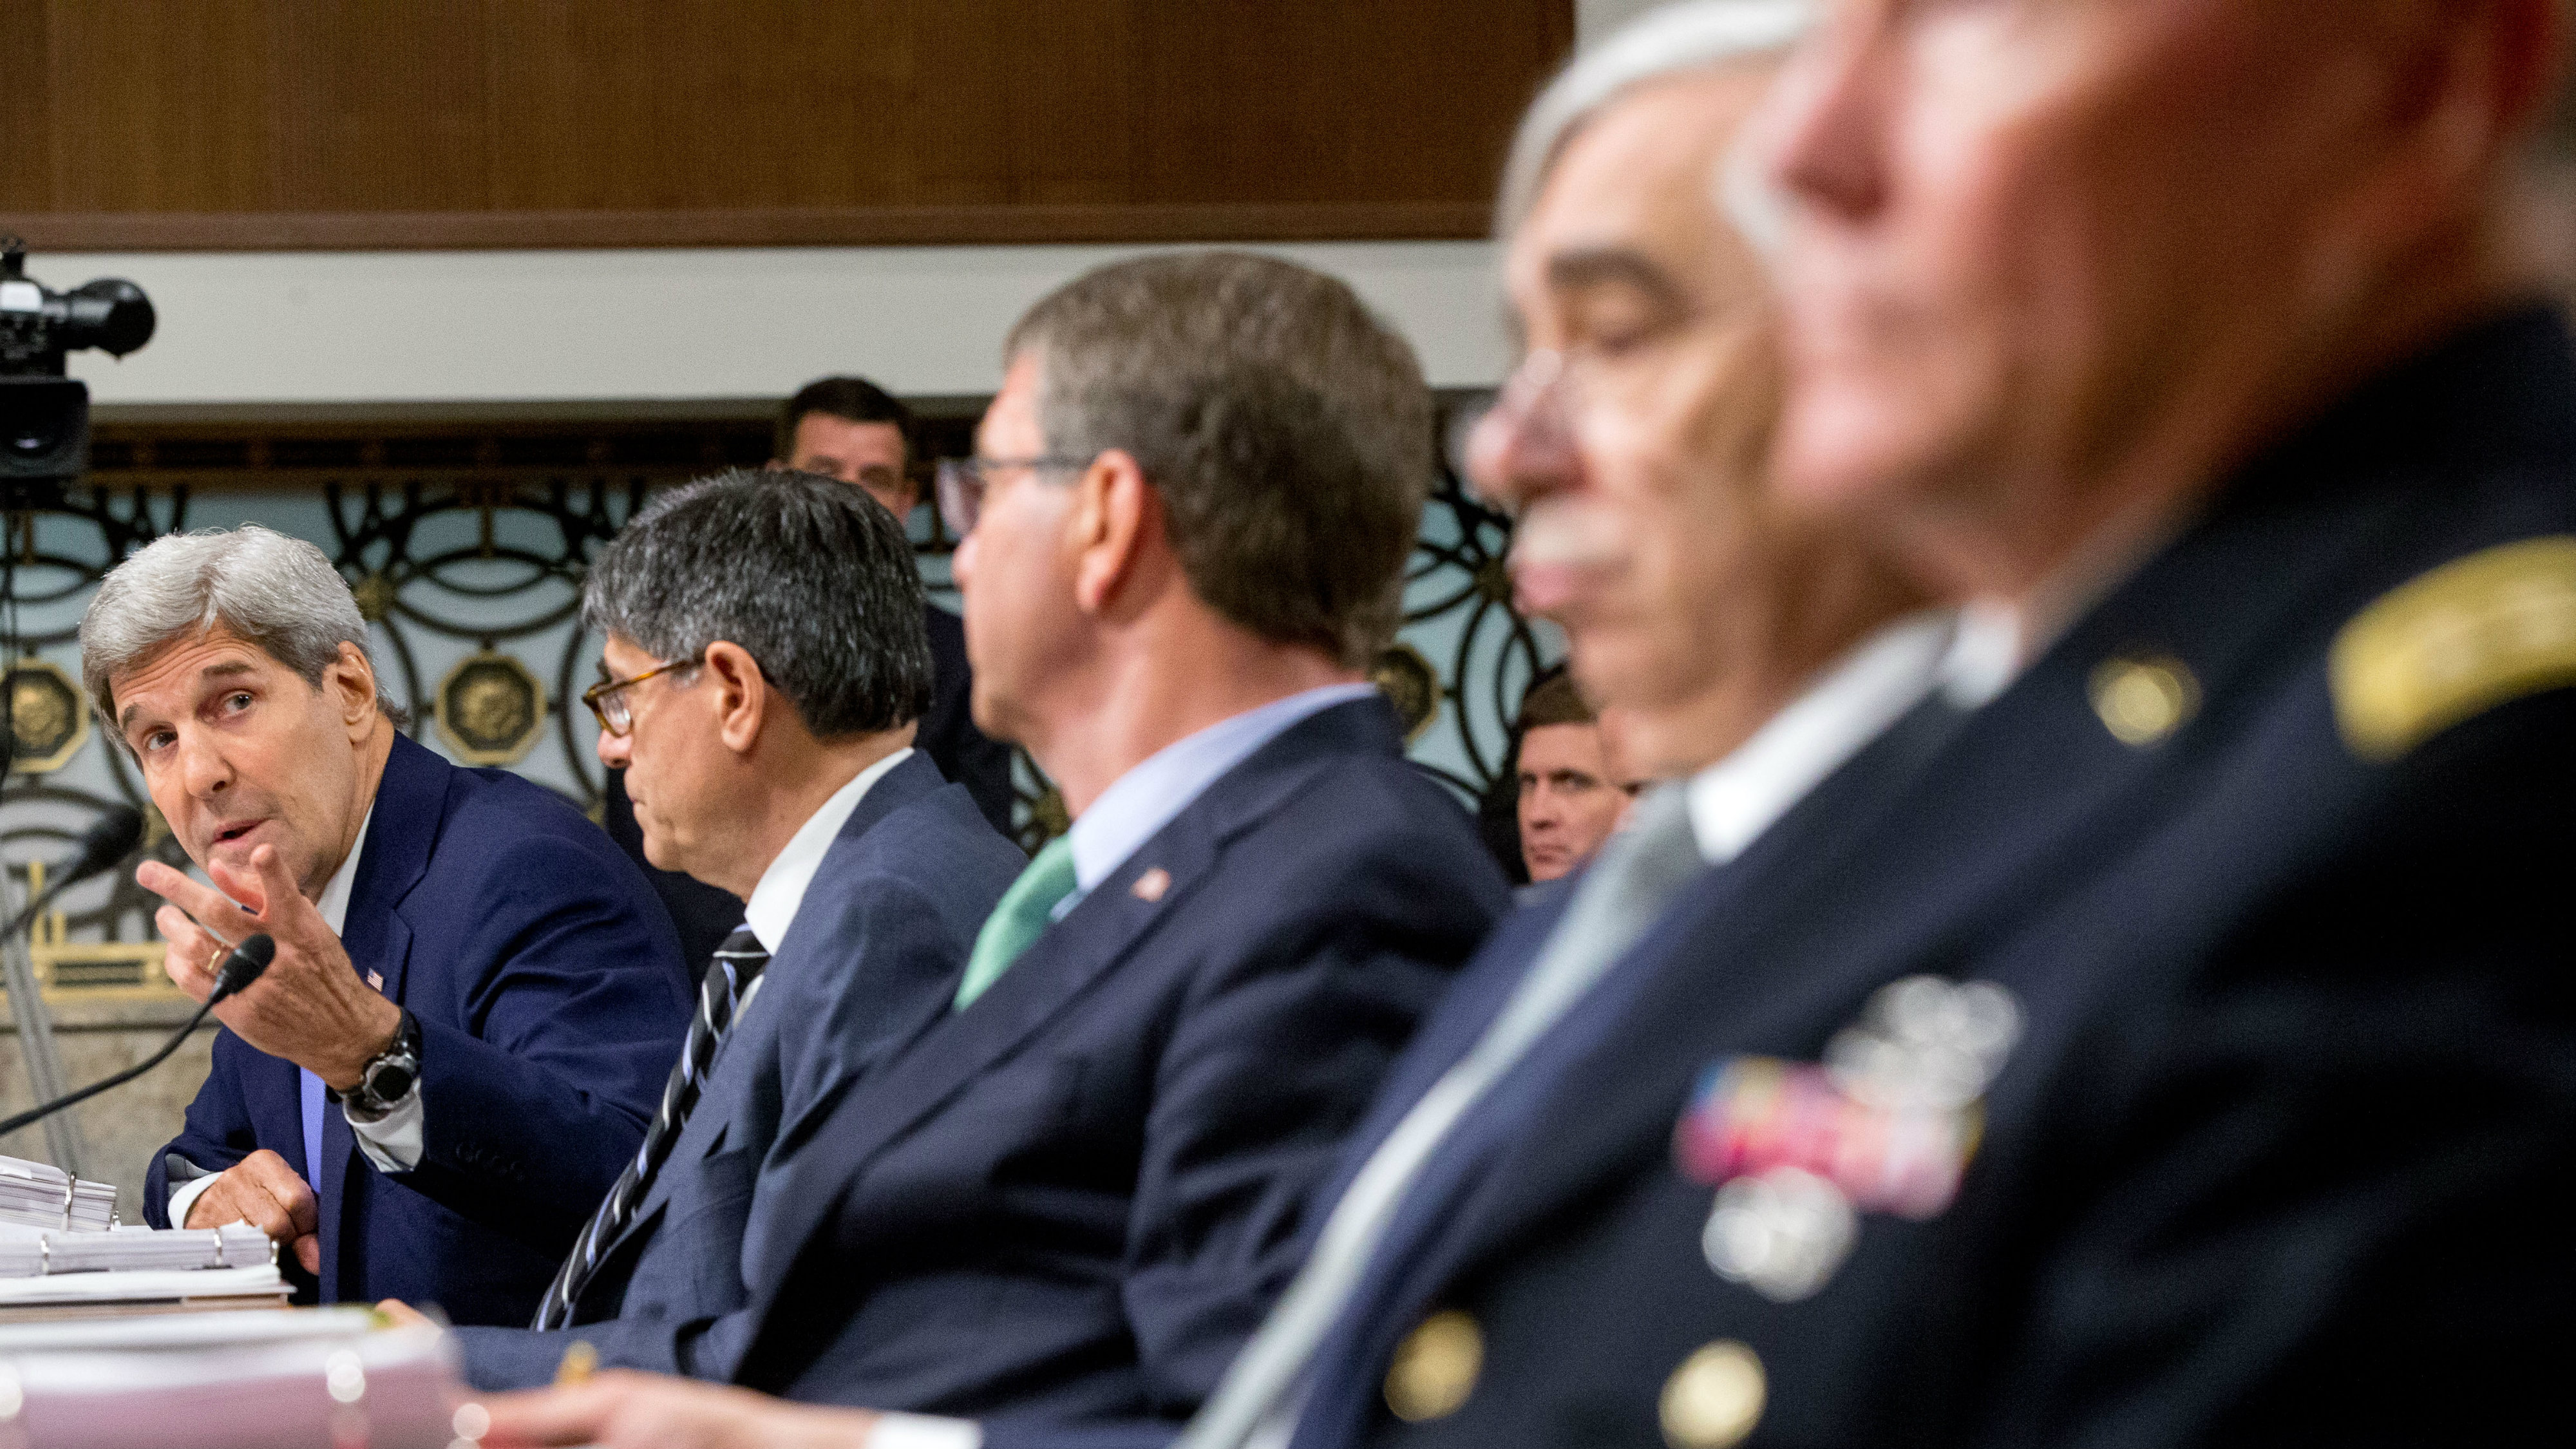 Secretary of State John Kerry, left, testifies on Capitol Hill in Washington, Wednesday, July 29, 2015, before the Senate Armed Services Committee hearing , on the impacts of the Joint Comprehensive Plan of Action (JCPOA) on U.S. Interests and the Military Balance in the Middle East. From left are, Kerry, Treasury Secretary Jacob Lew, Defense Secretary Ash Carter, Energy Secretary Ernest Moniz, and Joint Chiefs Chairman Gen. Martin Dempsey appear . (AP Photo/Andrew Harnik)